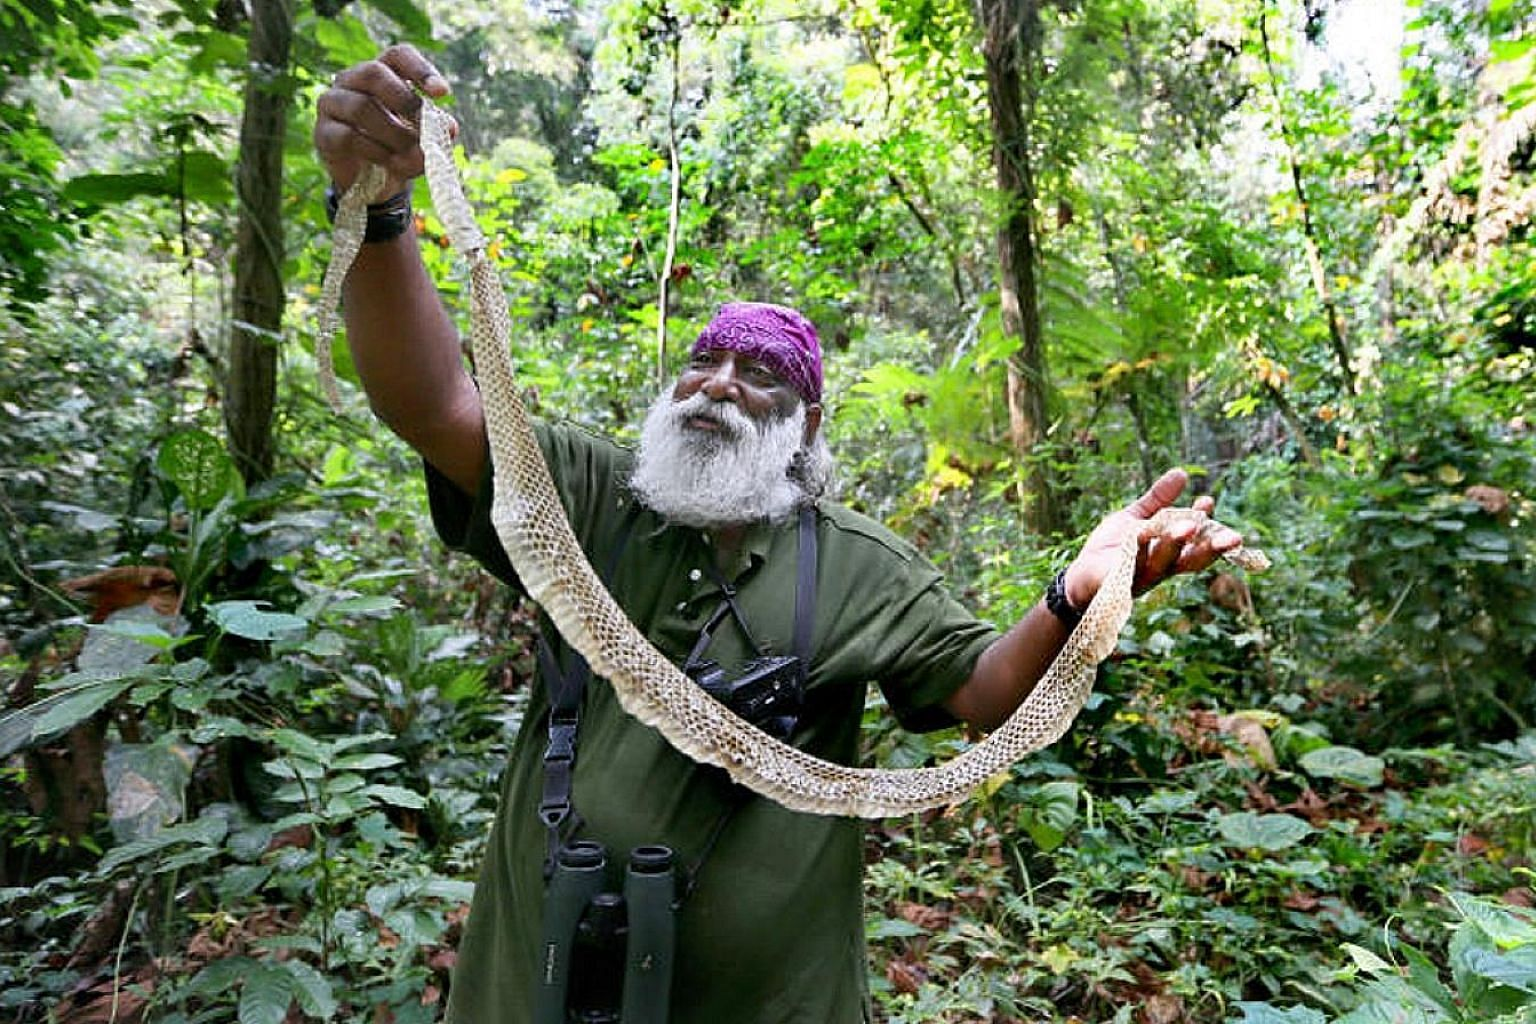 Wildlife expert and conservationist Subaraj Rajathurai holding up the shed skin of a black spitting cobra that he found during a walk at MacRitchie Reservoir earlier this month. He hopes that the environment will continue to be an important issue und